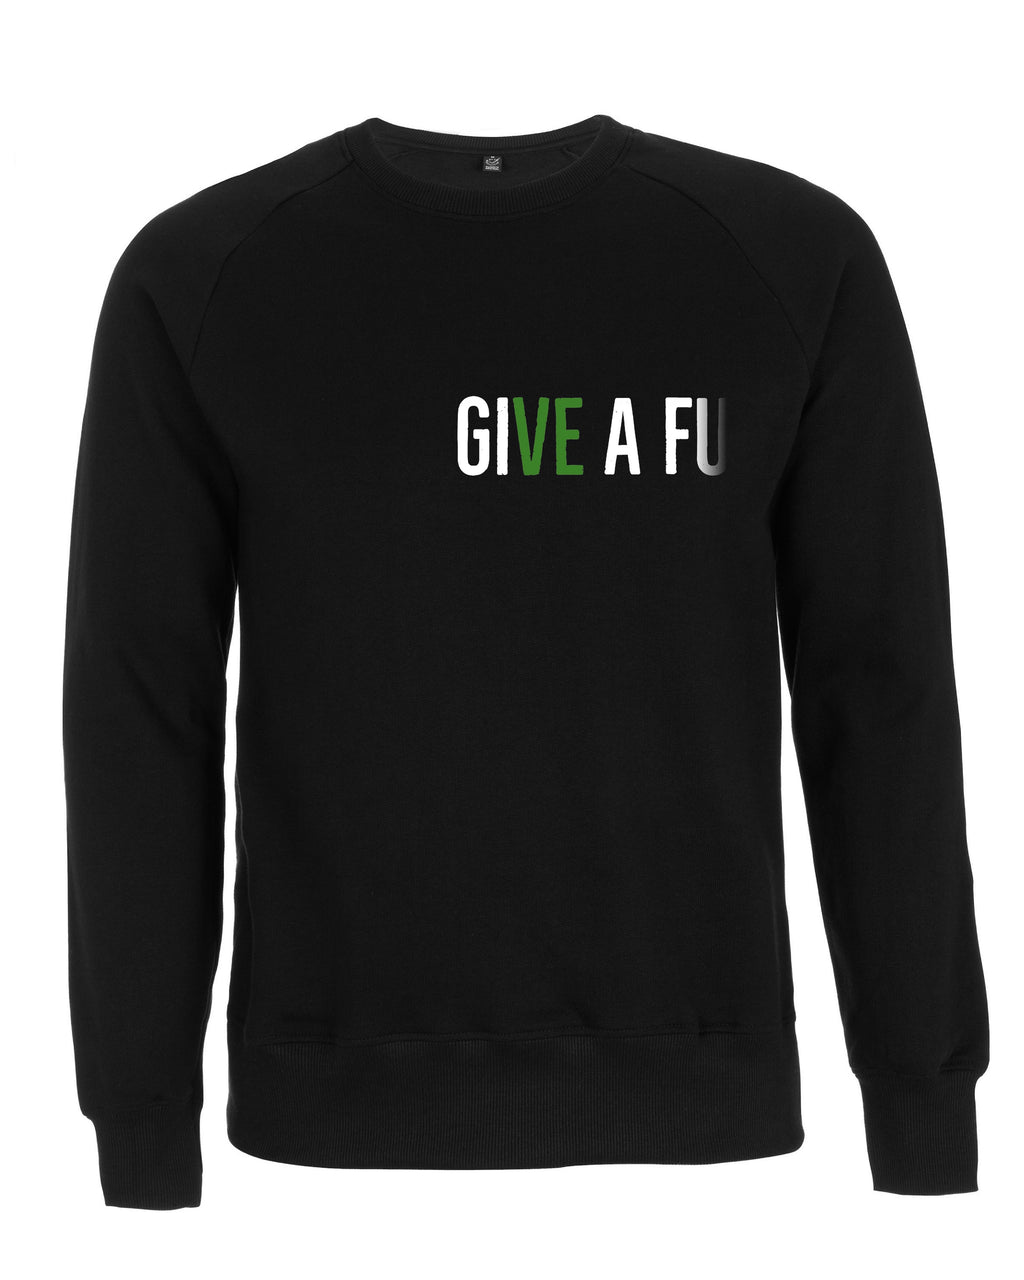 GIVE A FU Original Unisex Organic Cotton Sweatshirt